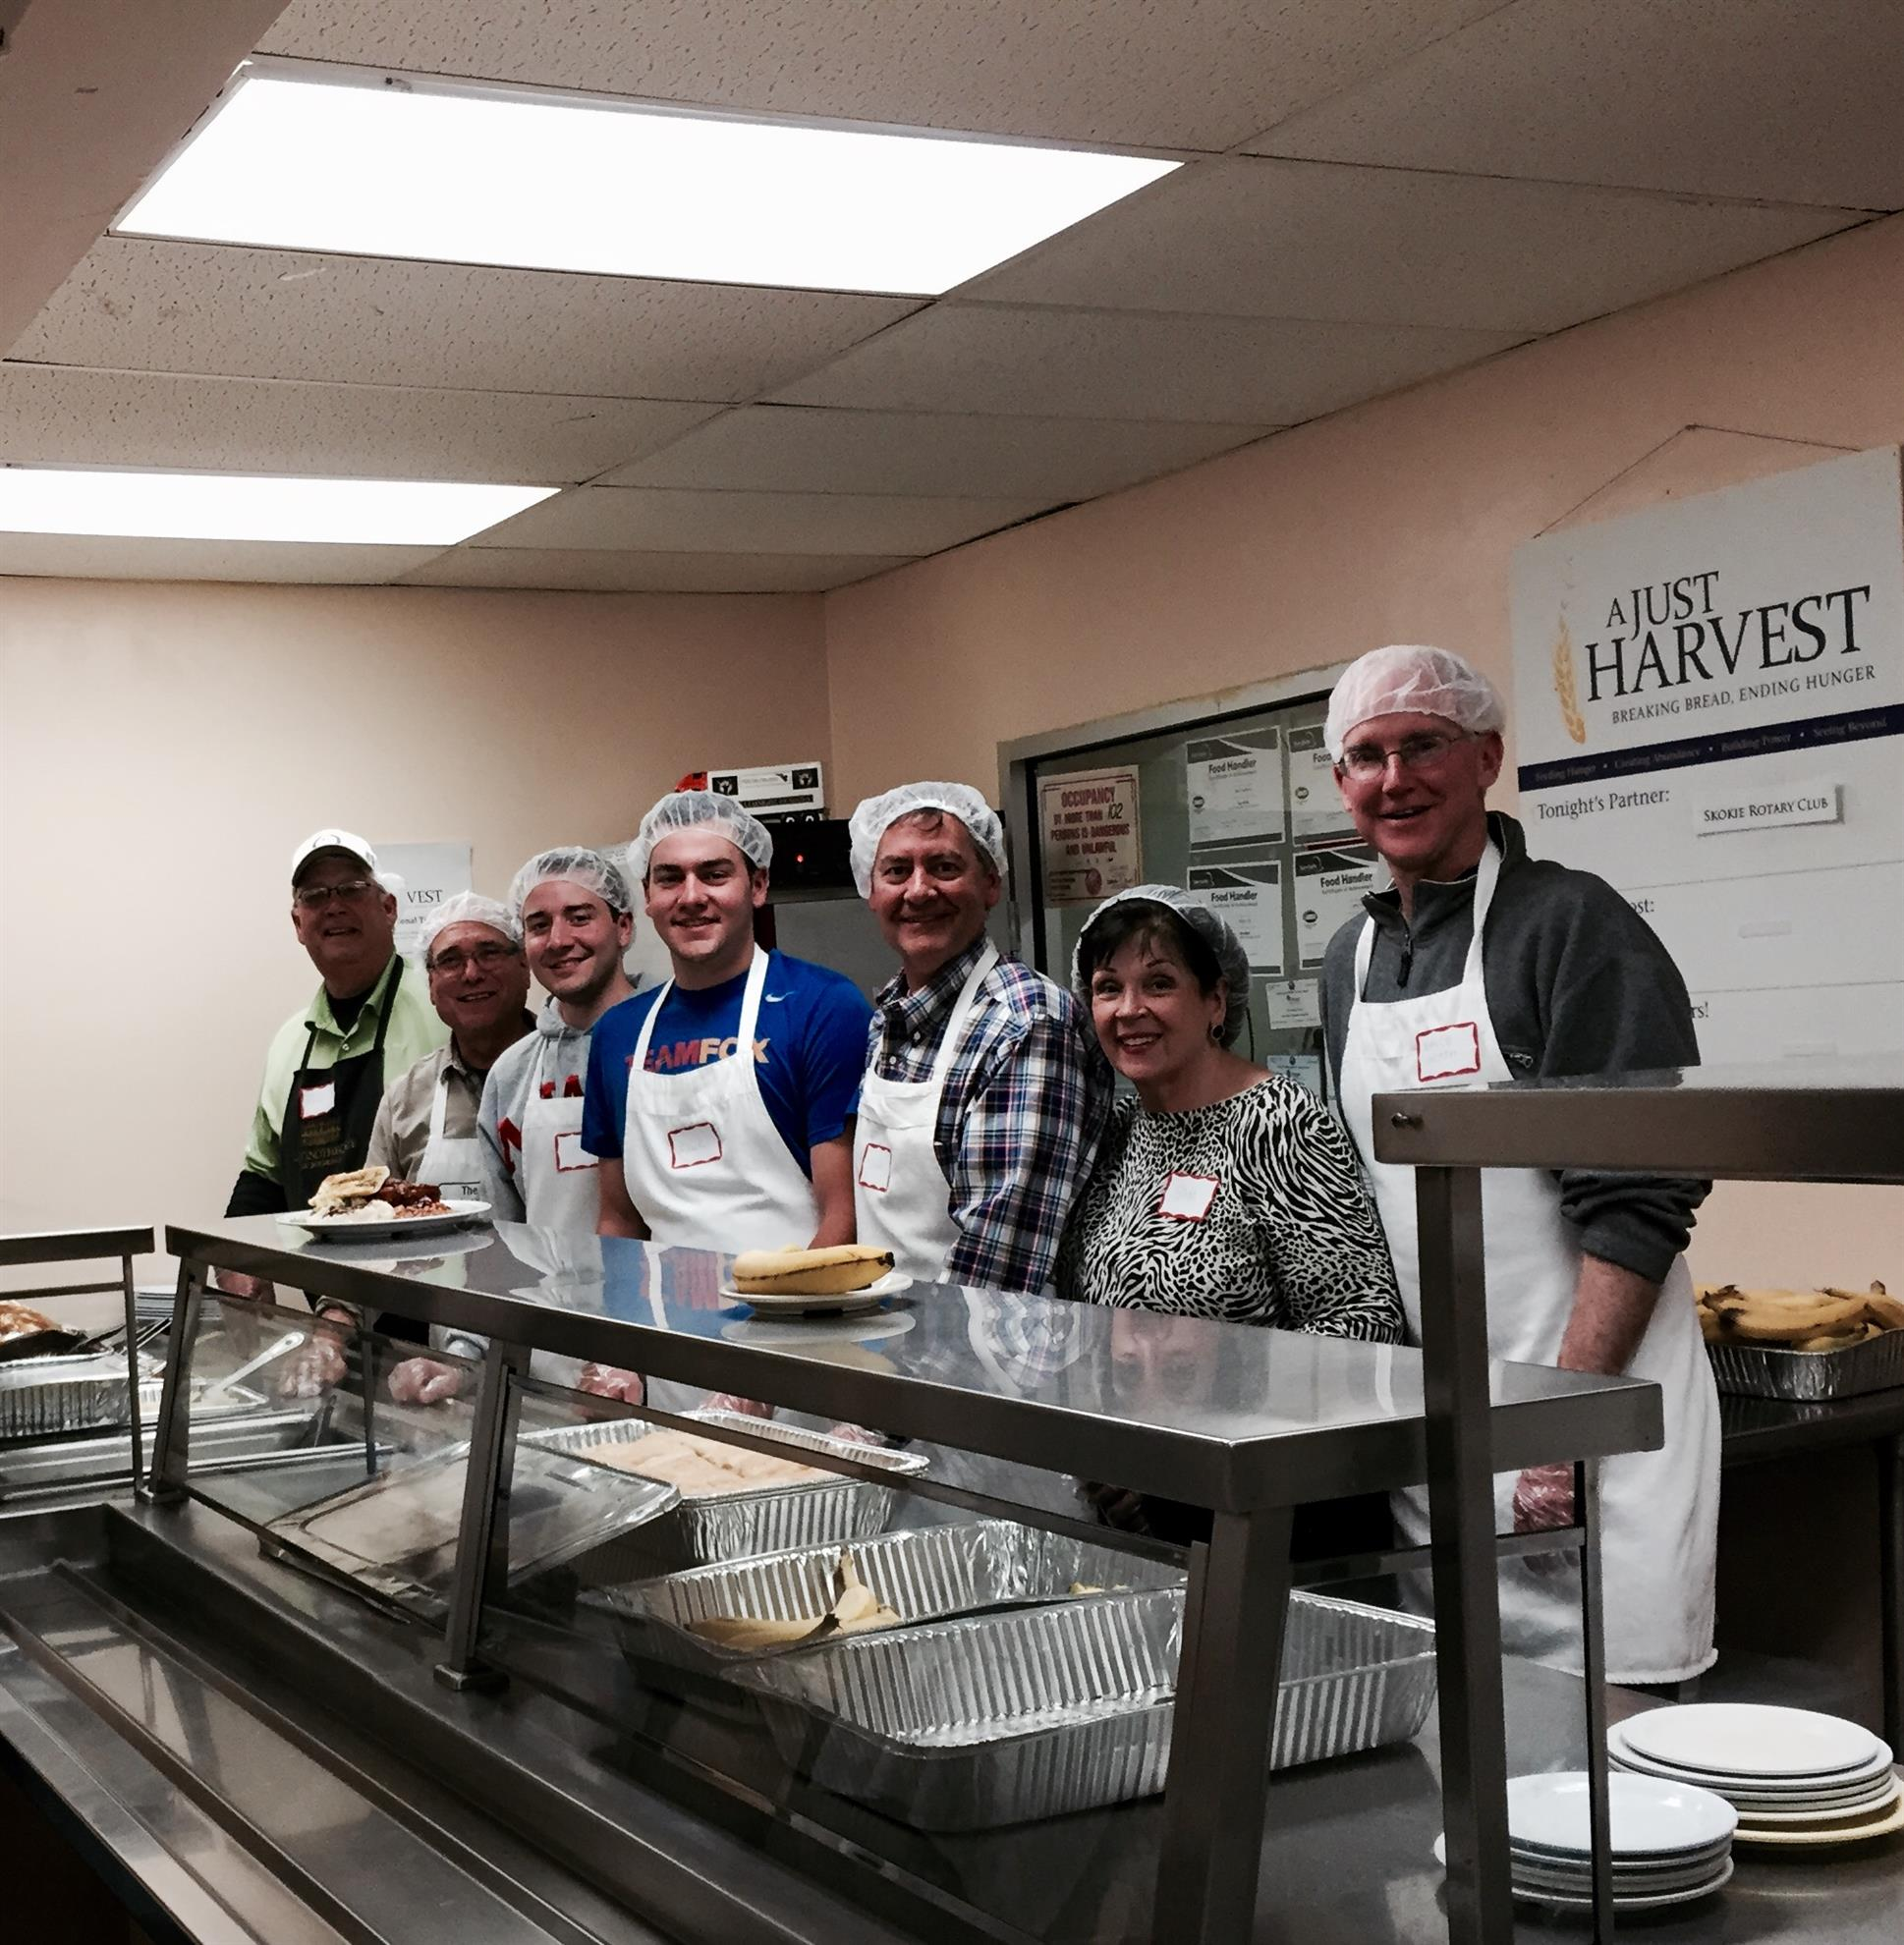 Soup Kitchen - May 31, 2015 | Rotary Club of Skokie Valley